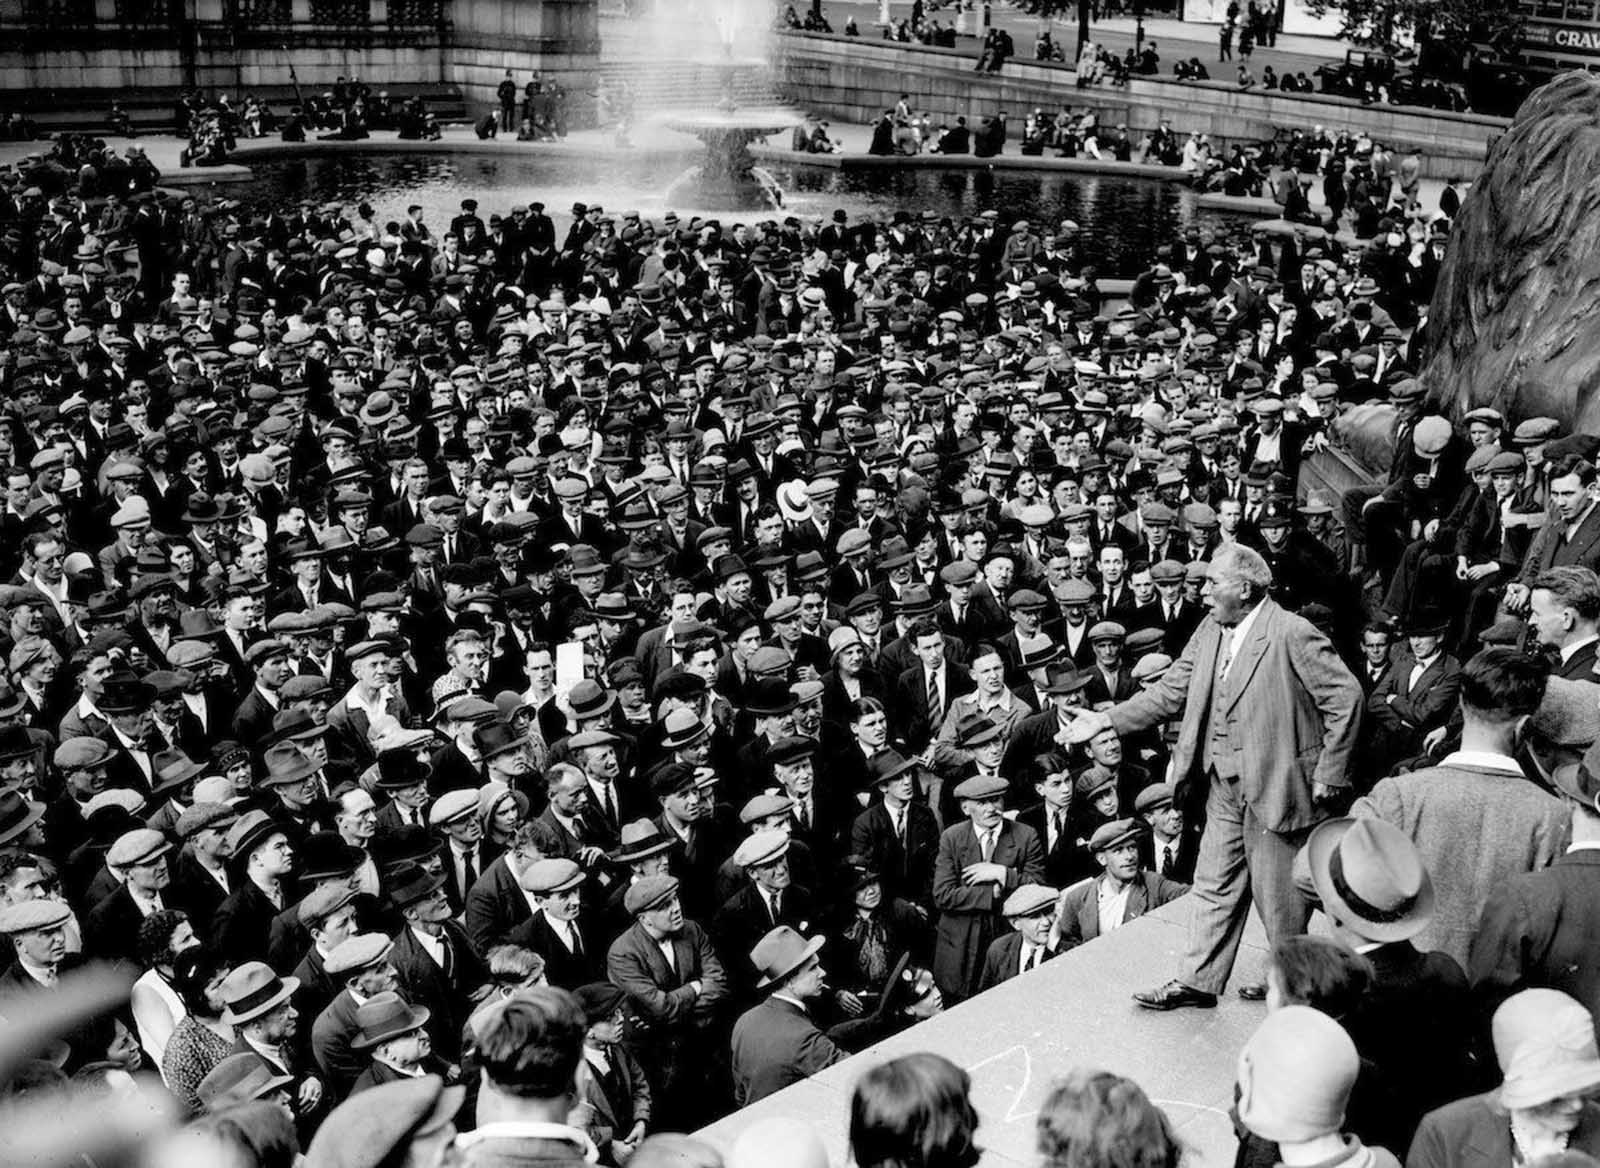 Veteran Trade Unionist Tom Mann (1856-1941) addressing a Communist meeting in Trafalgar Square, London. 1931.